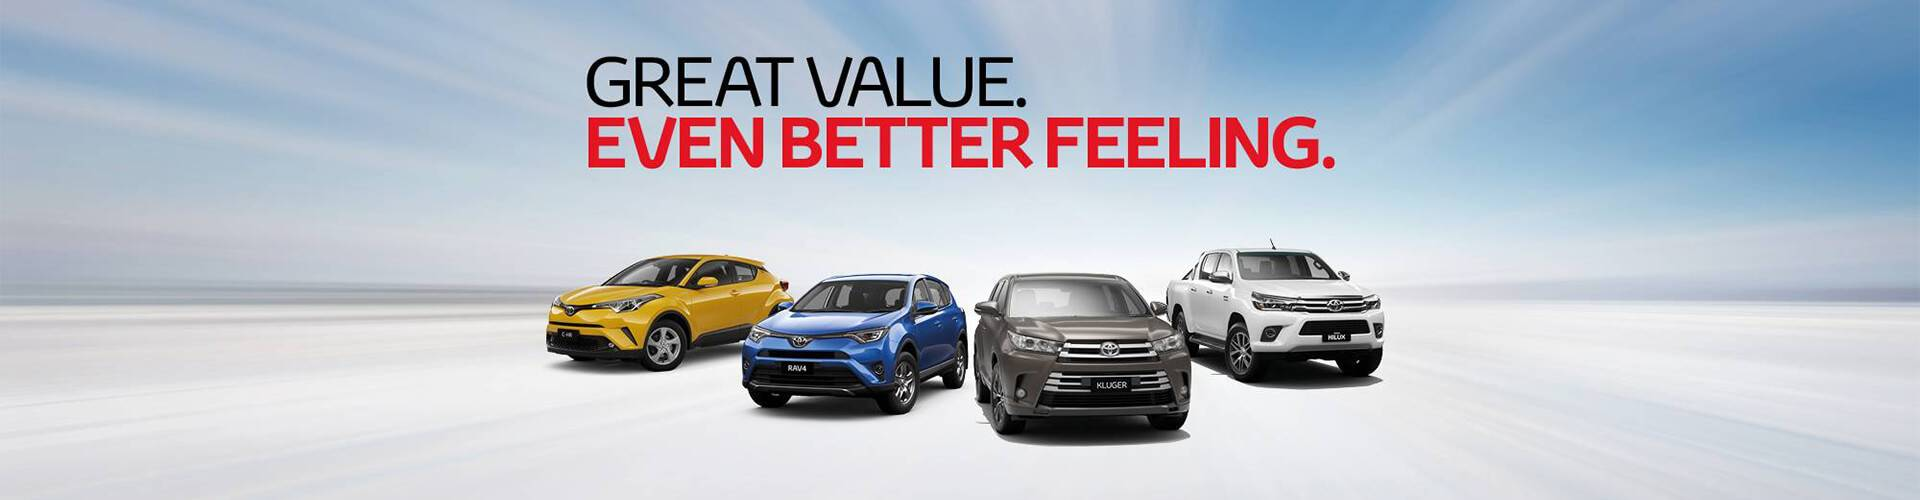 Great Value, Even Greater Feeling | Toyota March Promotion